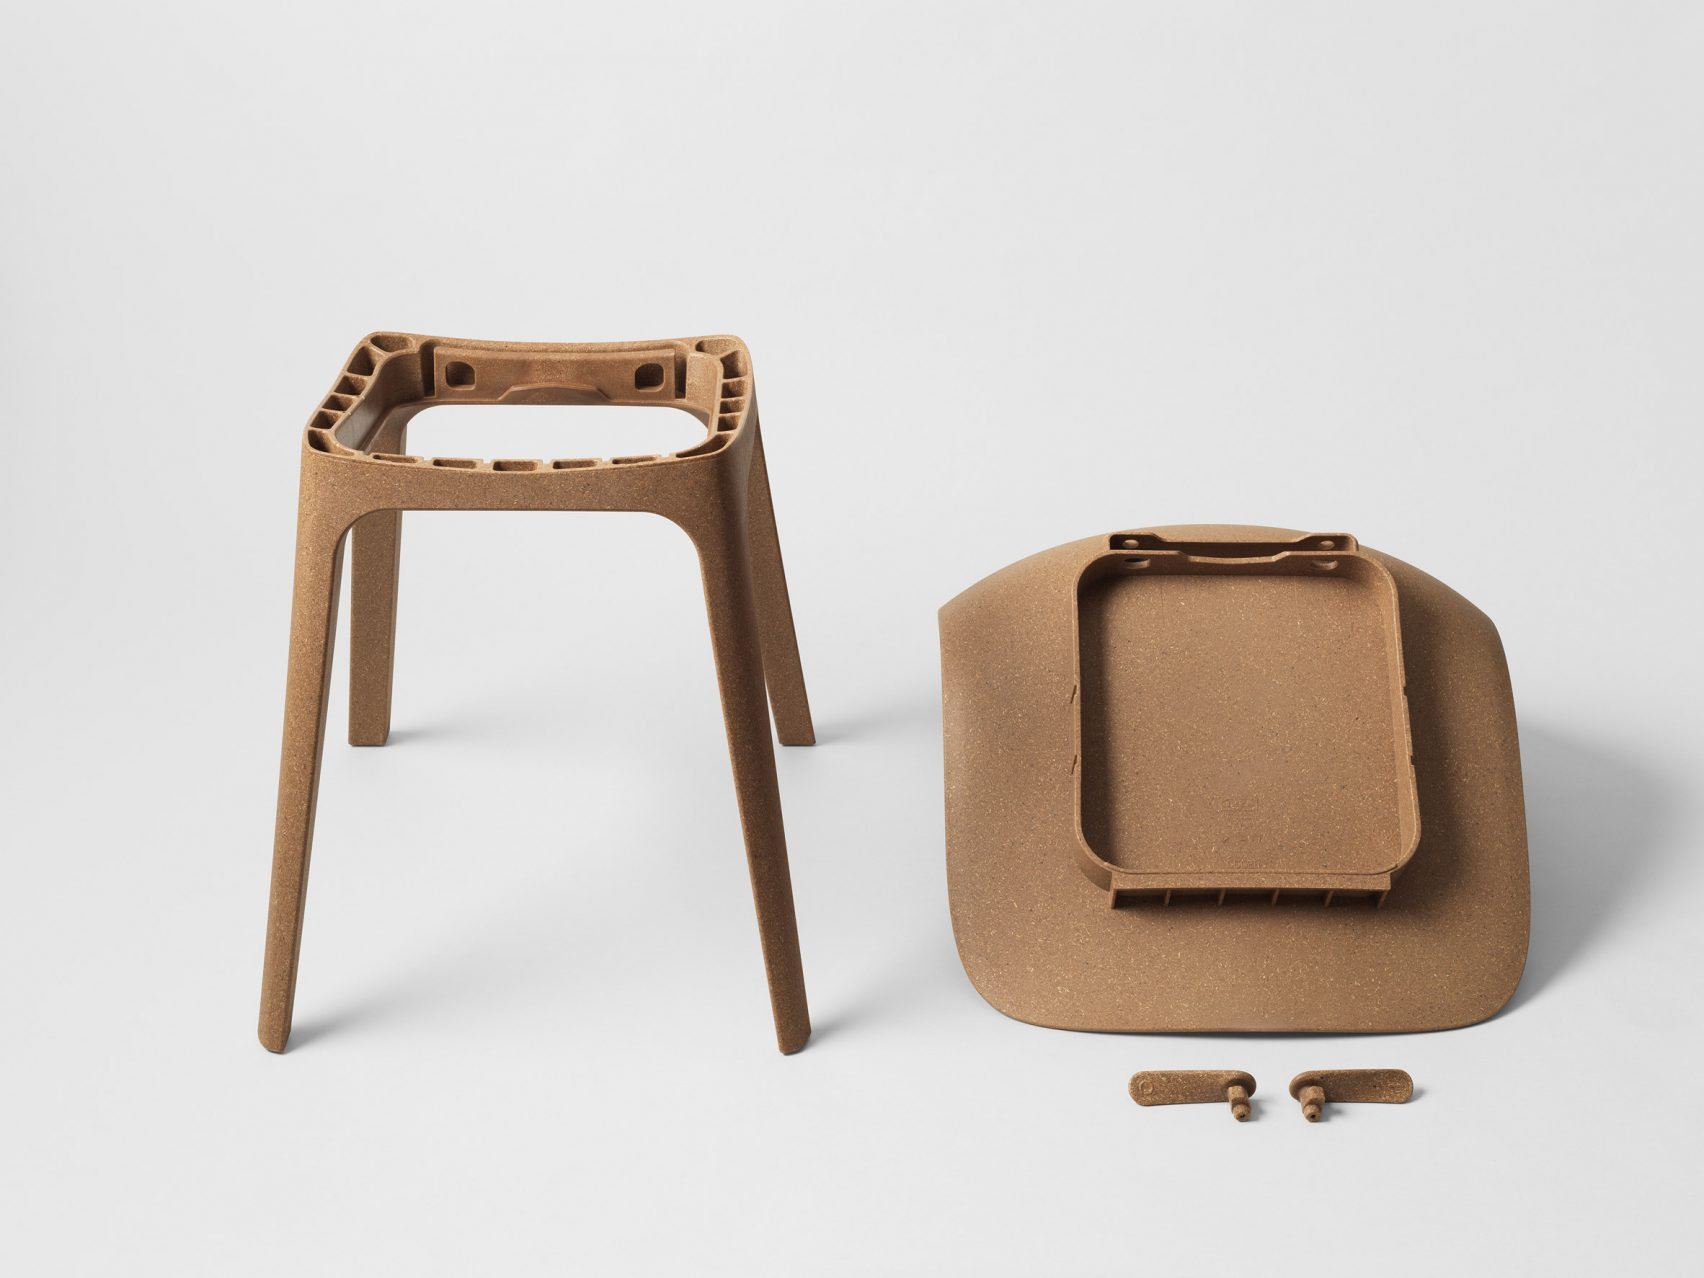 Ikea releases new chair made from recycled wood and plastic for Ikea sedia odger